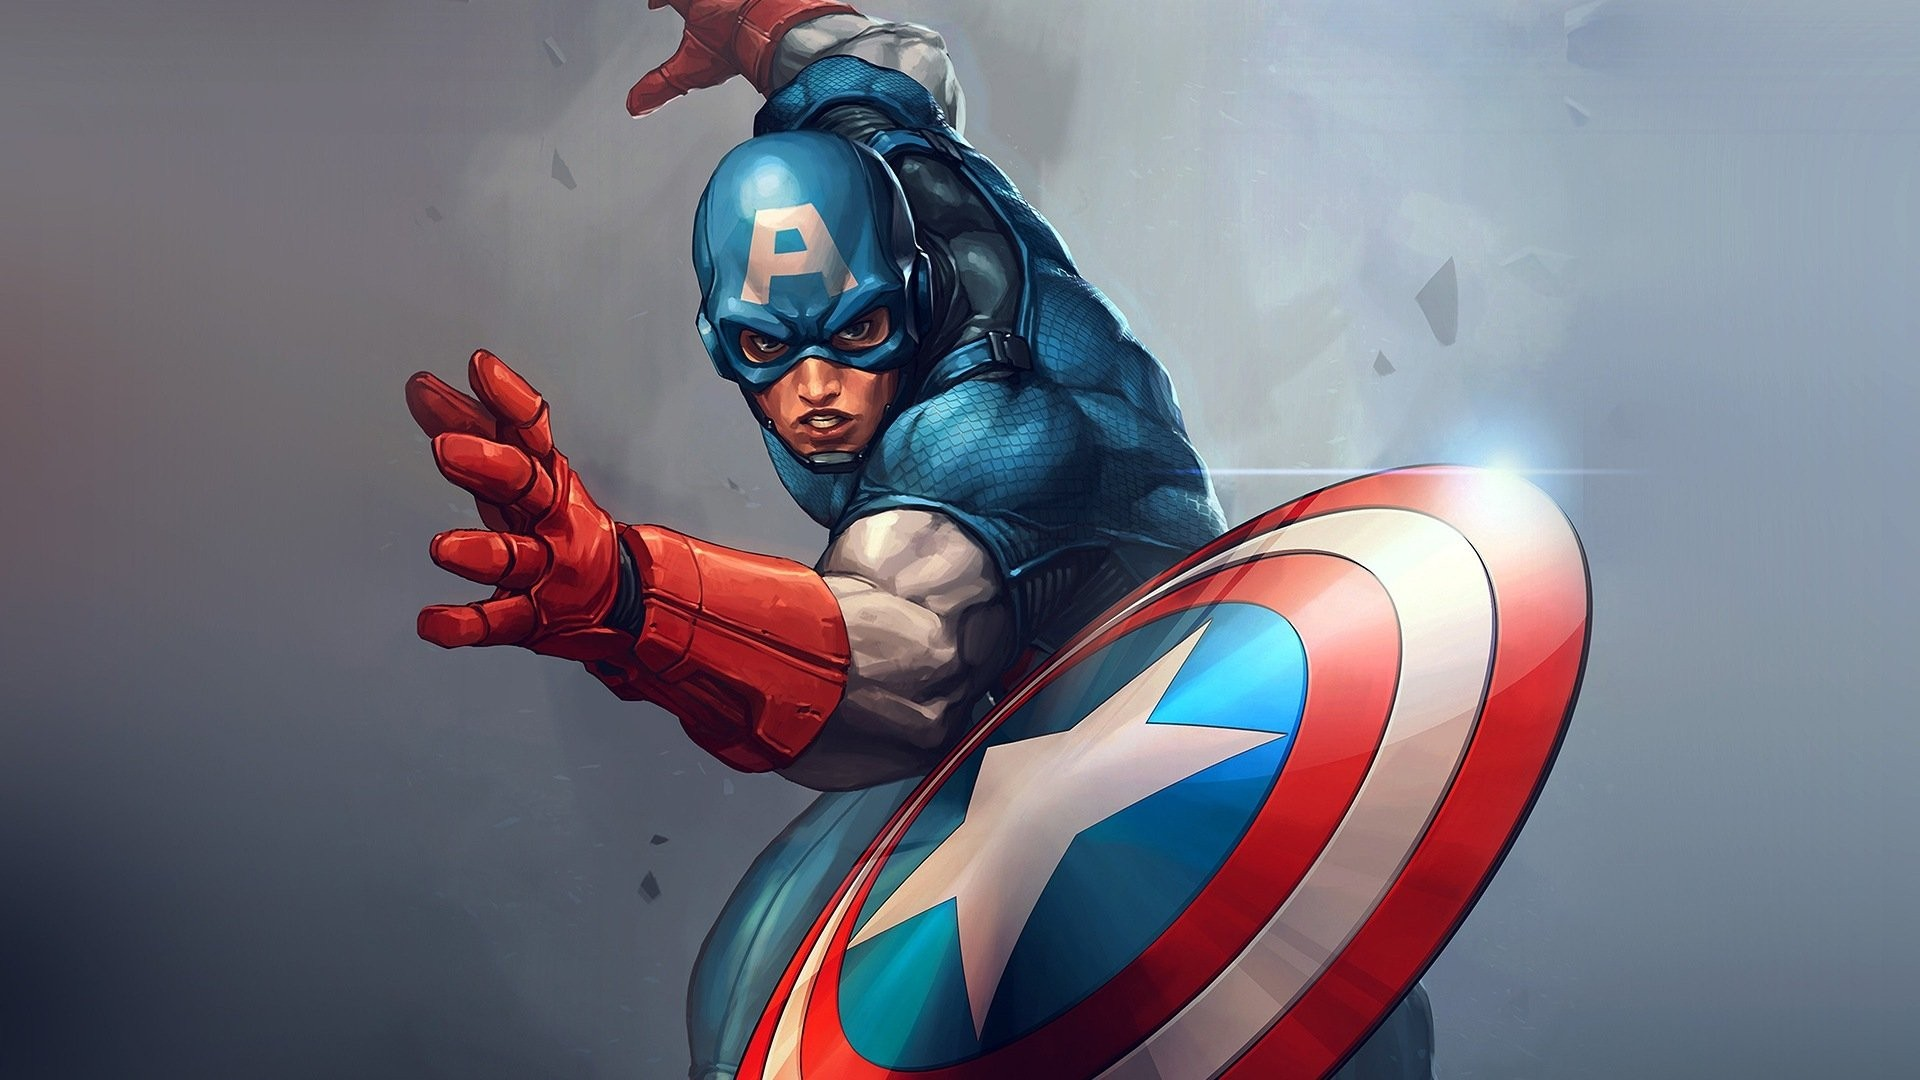 Captain america wallpaper download free amazing hd - Captain america hd images download ...